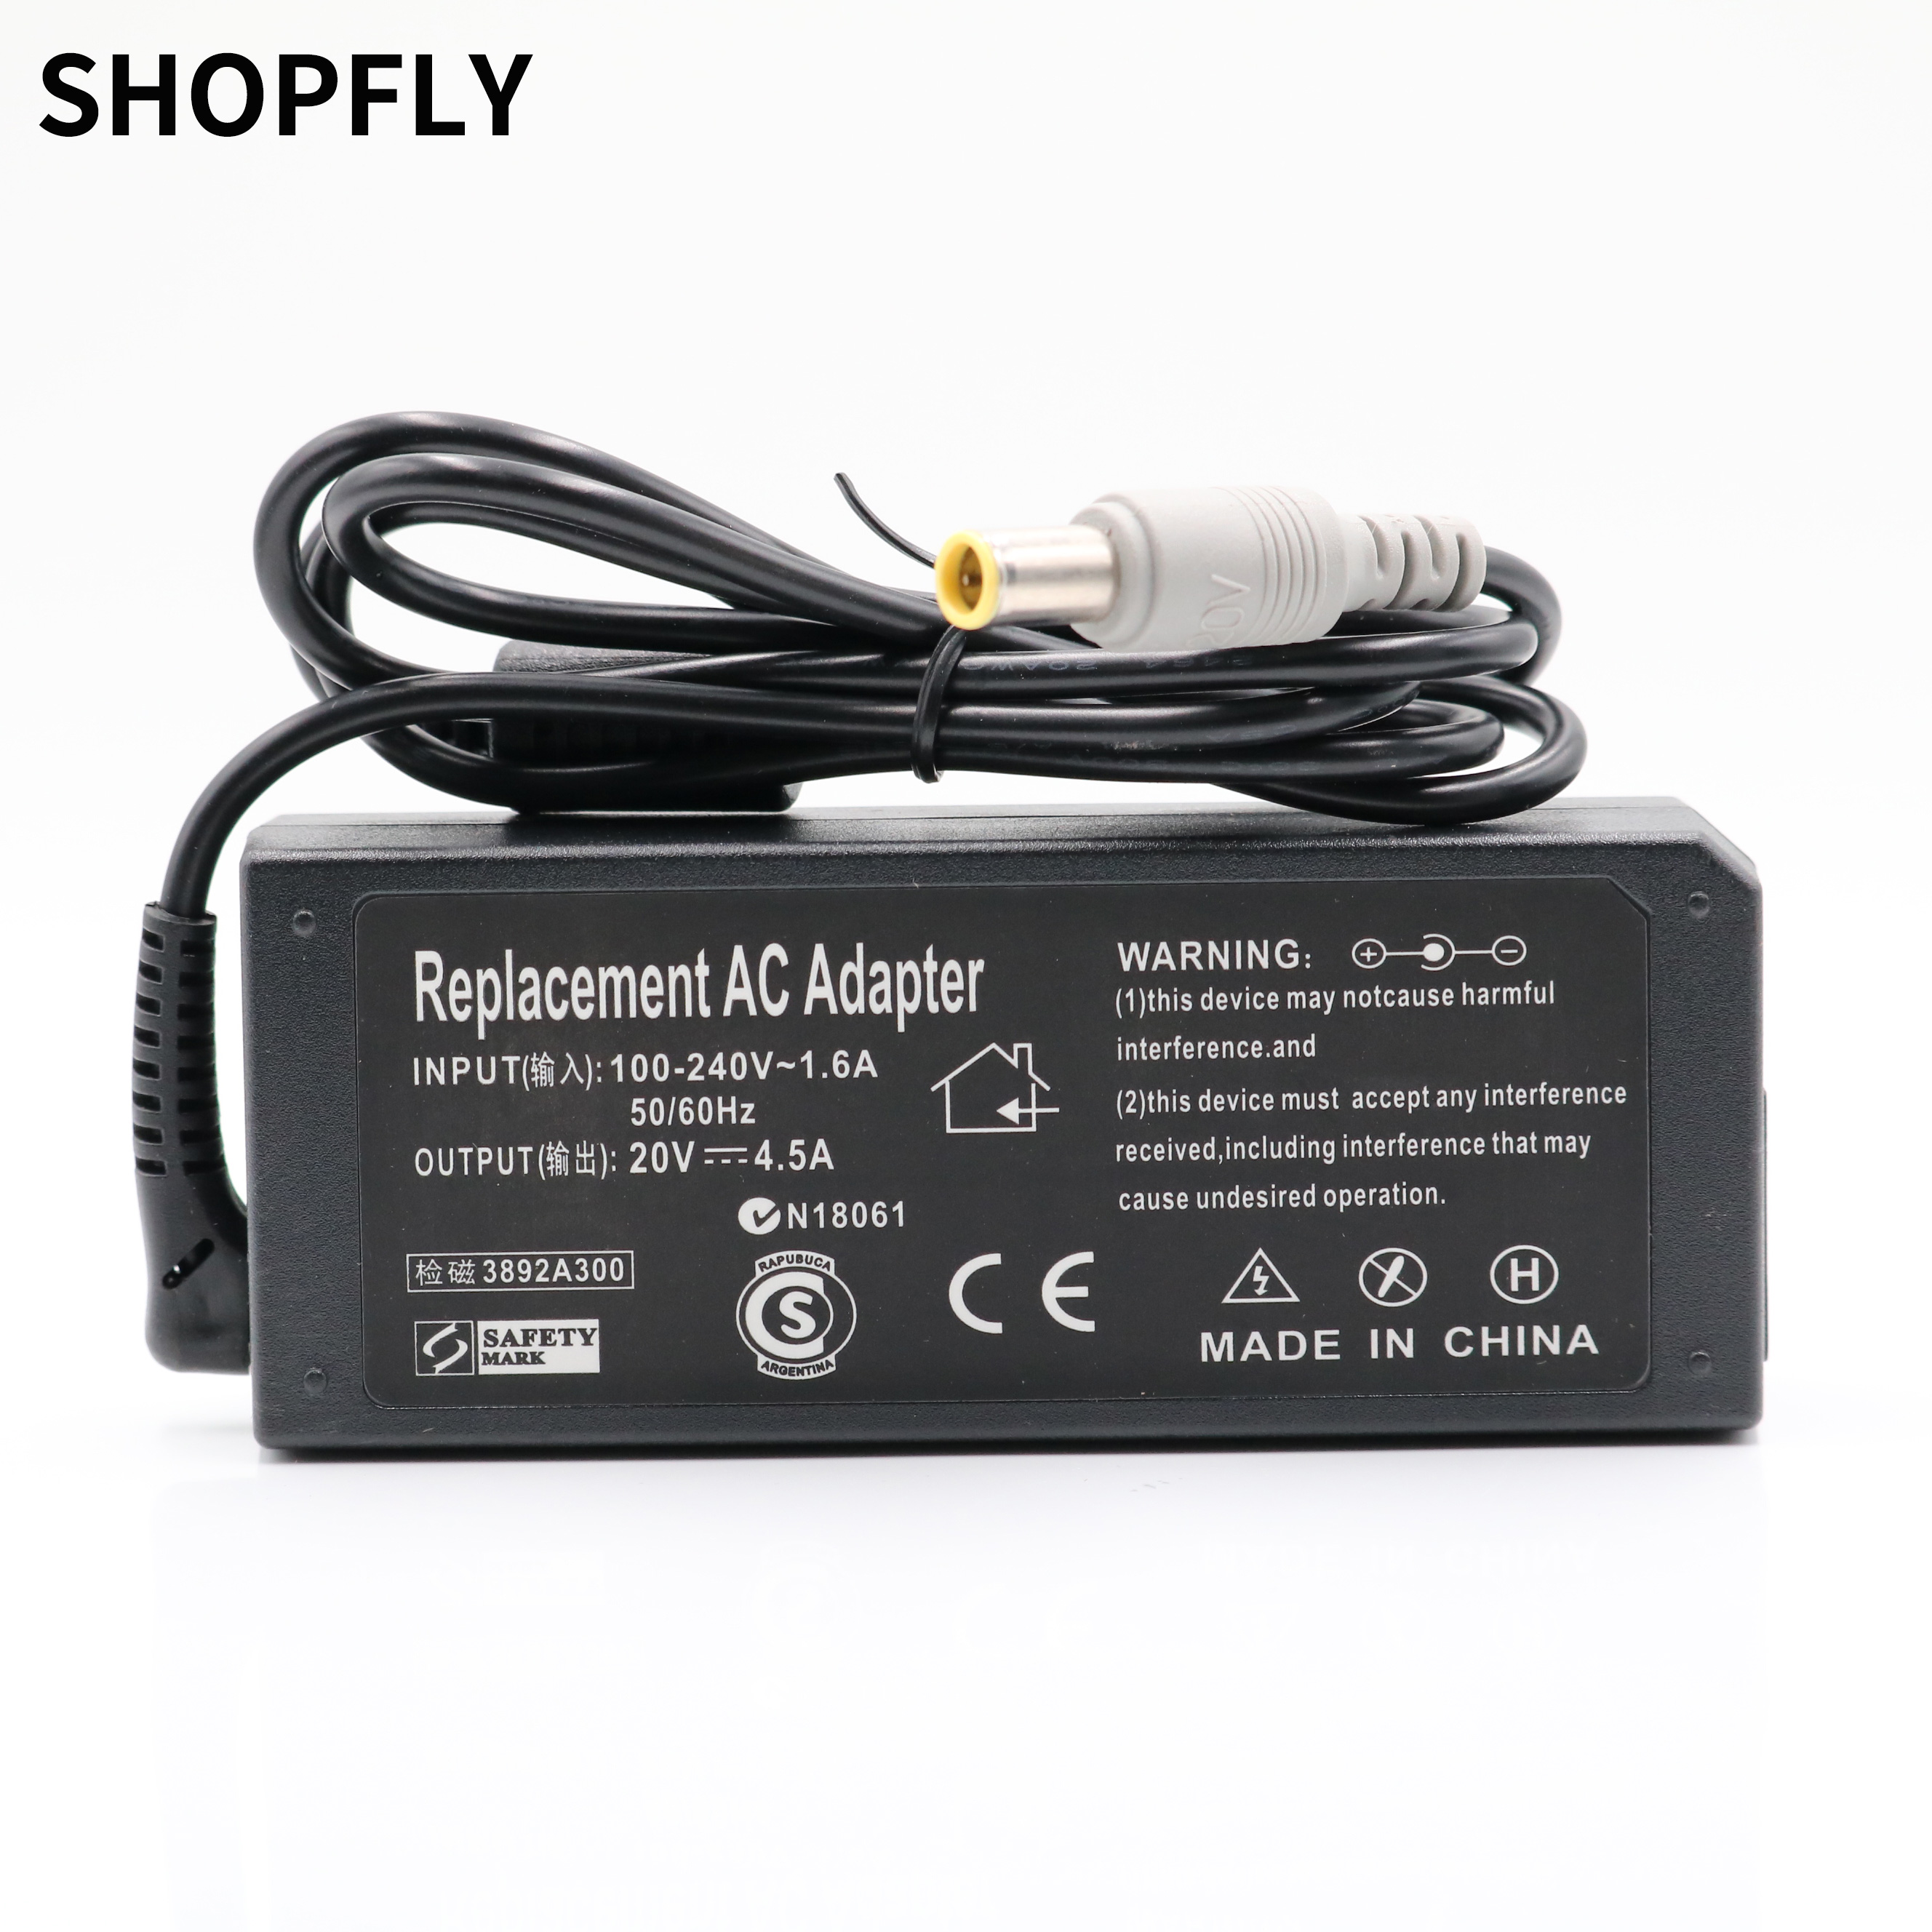 20V 4.5A 90W Replacement AC Adapter Charger For Lenovo <font><b>Thinkpad</b></font> E420 E430 T61 T60p Z60T T60 T420 T430 F25 <font><b>Notebook</b></font> Power Supply image